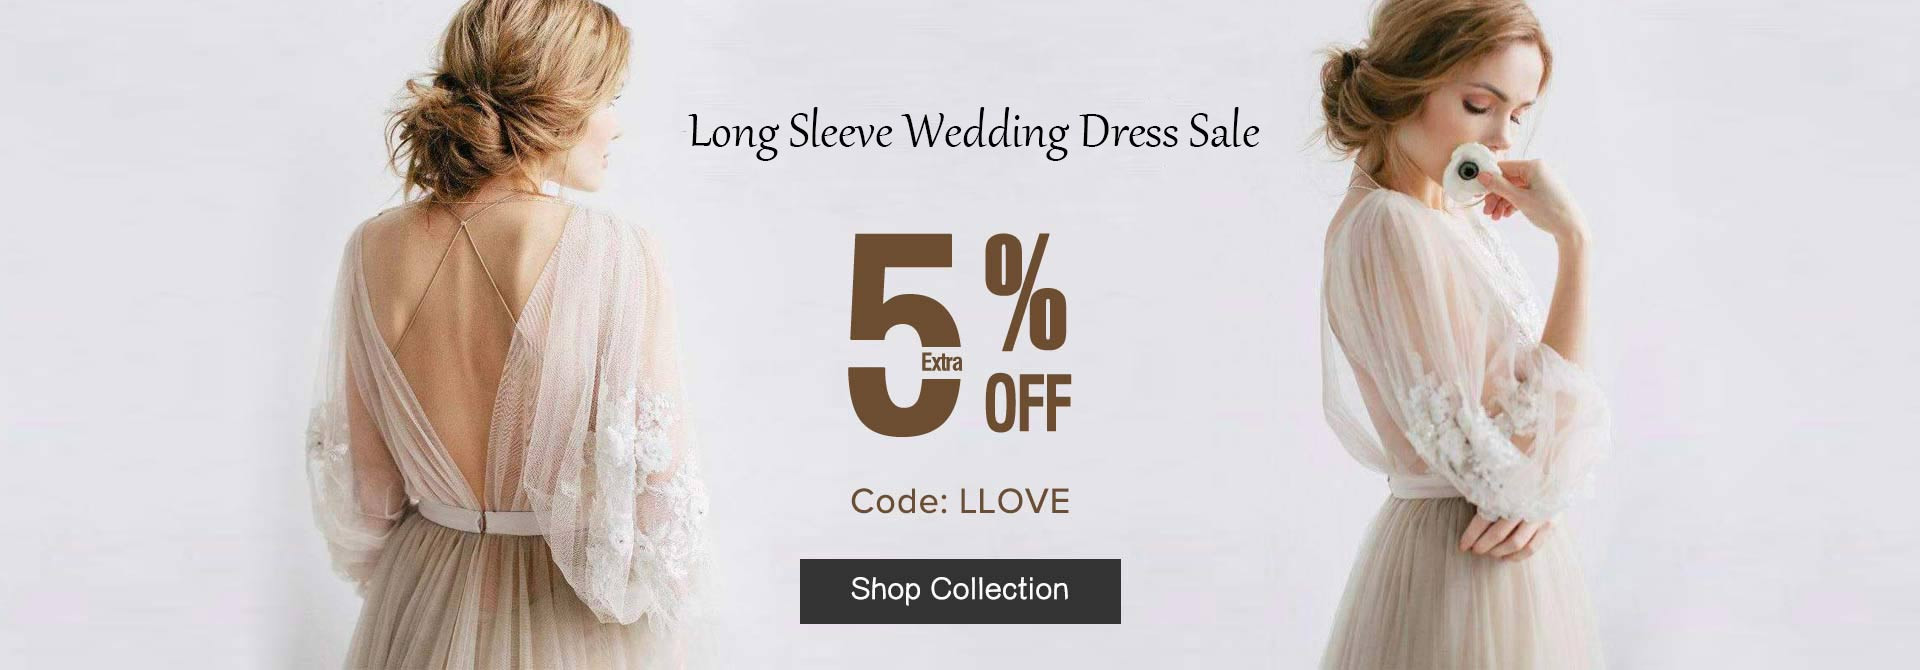 Extra 5% Off Long Sleeve Wedding Dresses Code LLOVE